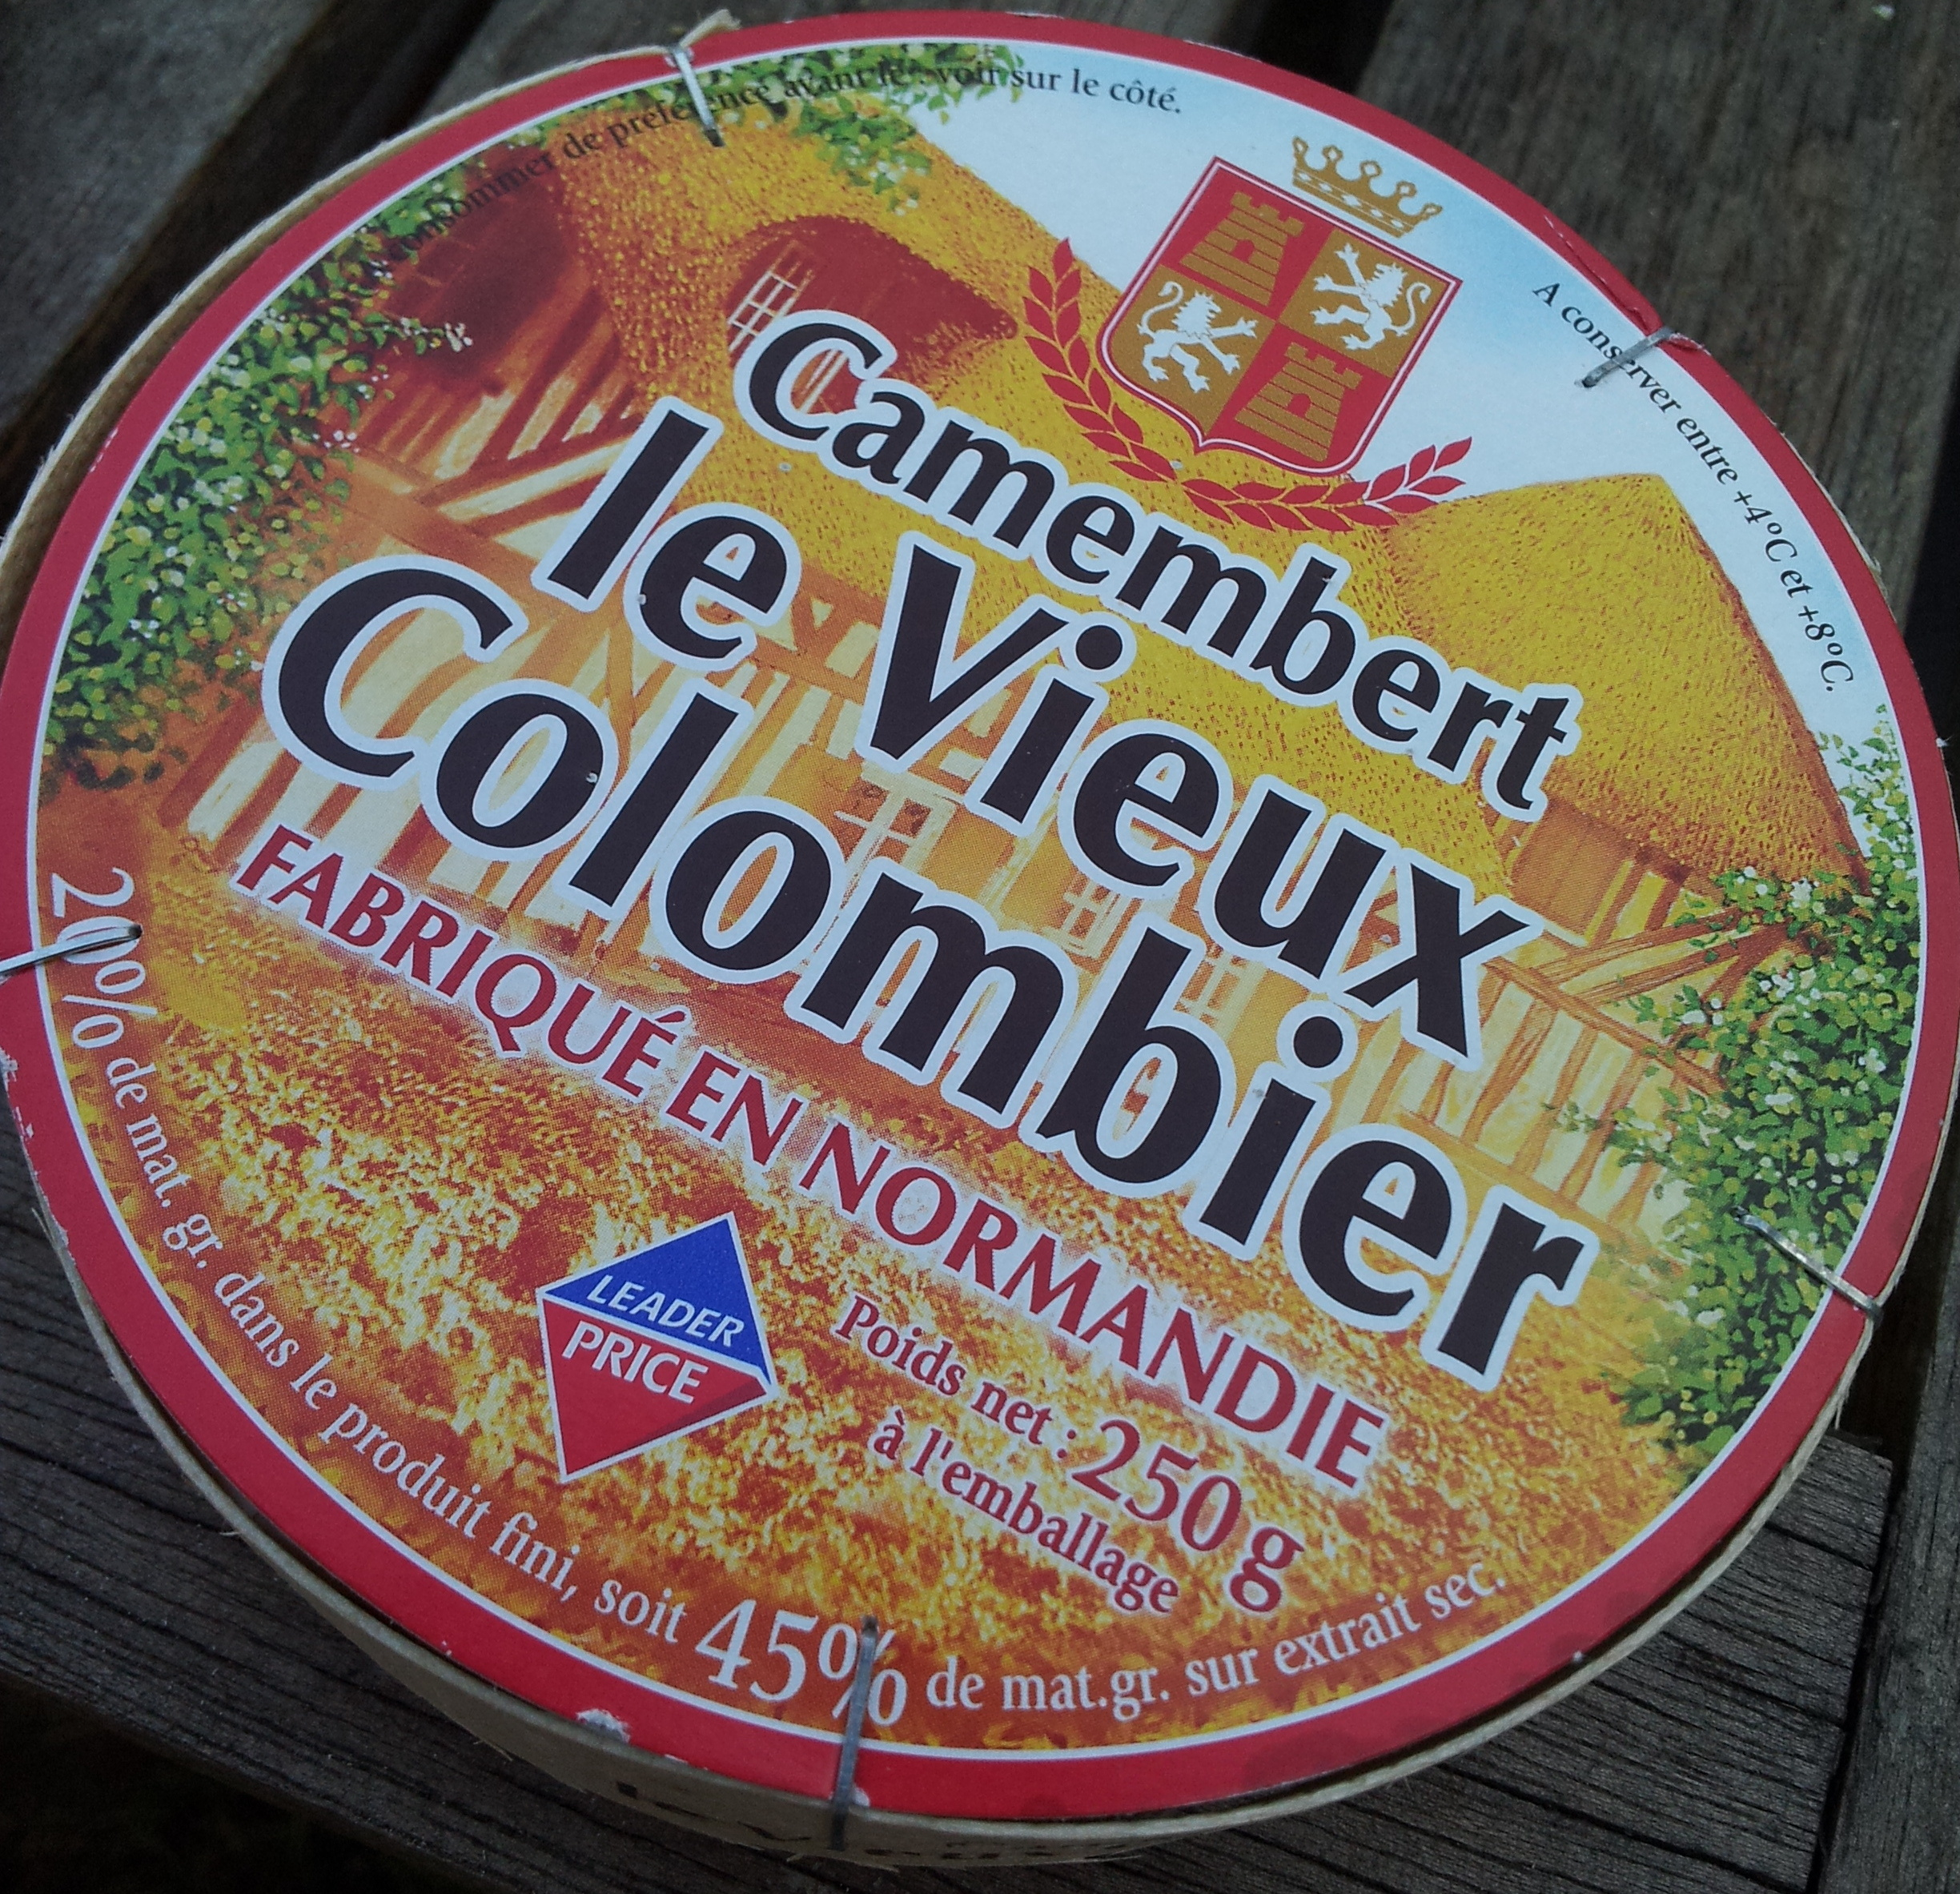 Camembert, le Vieux Colombier (20 % MG) - Product - fr